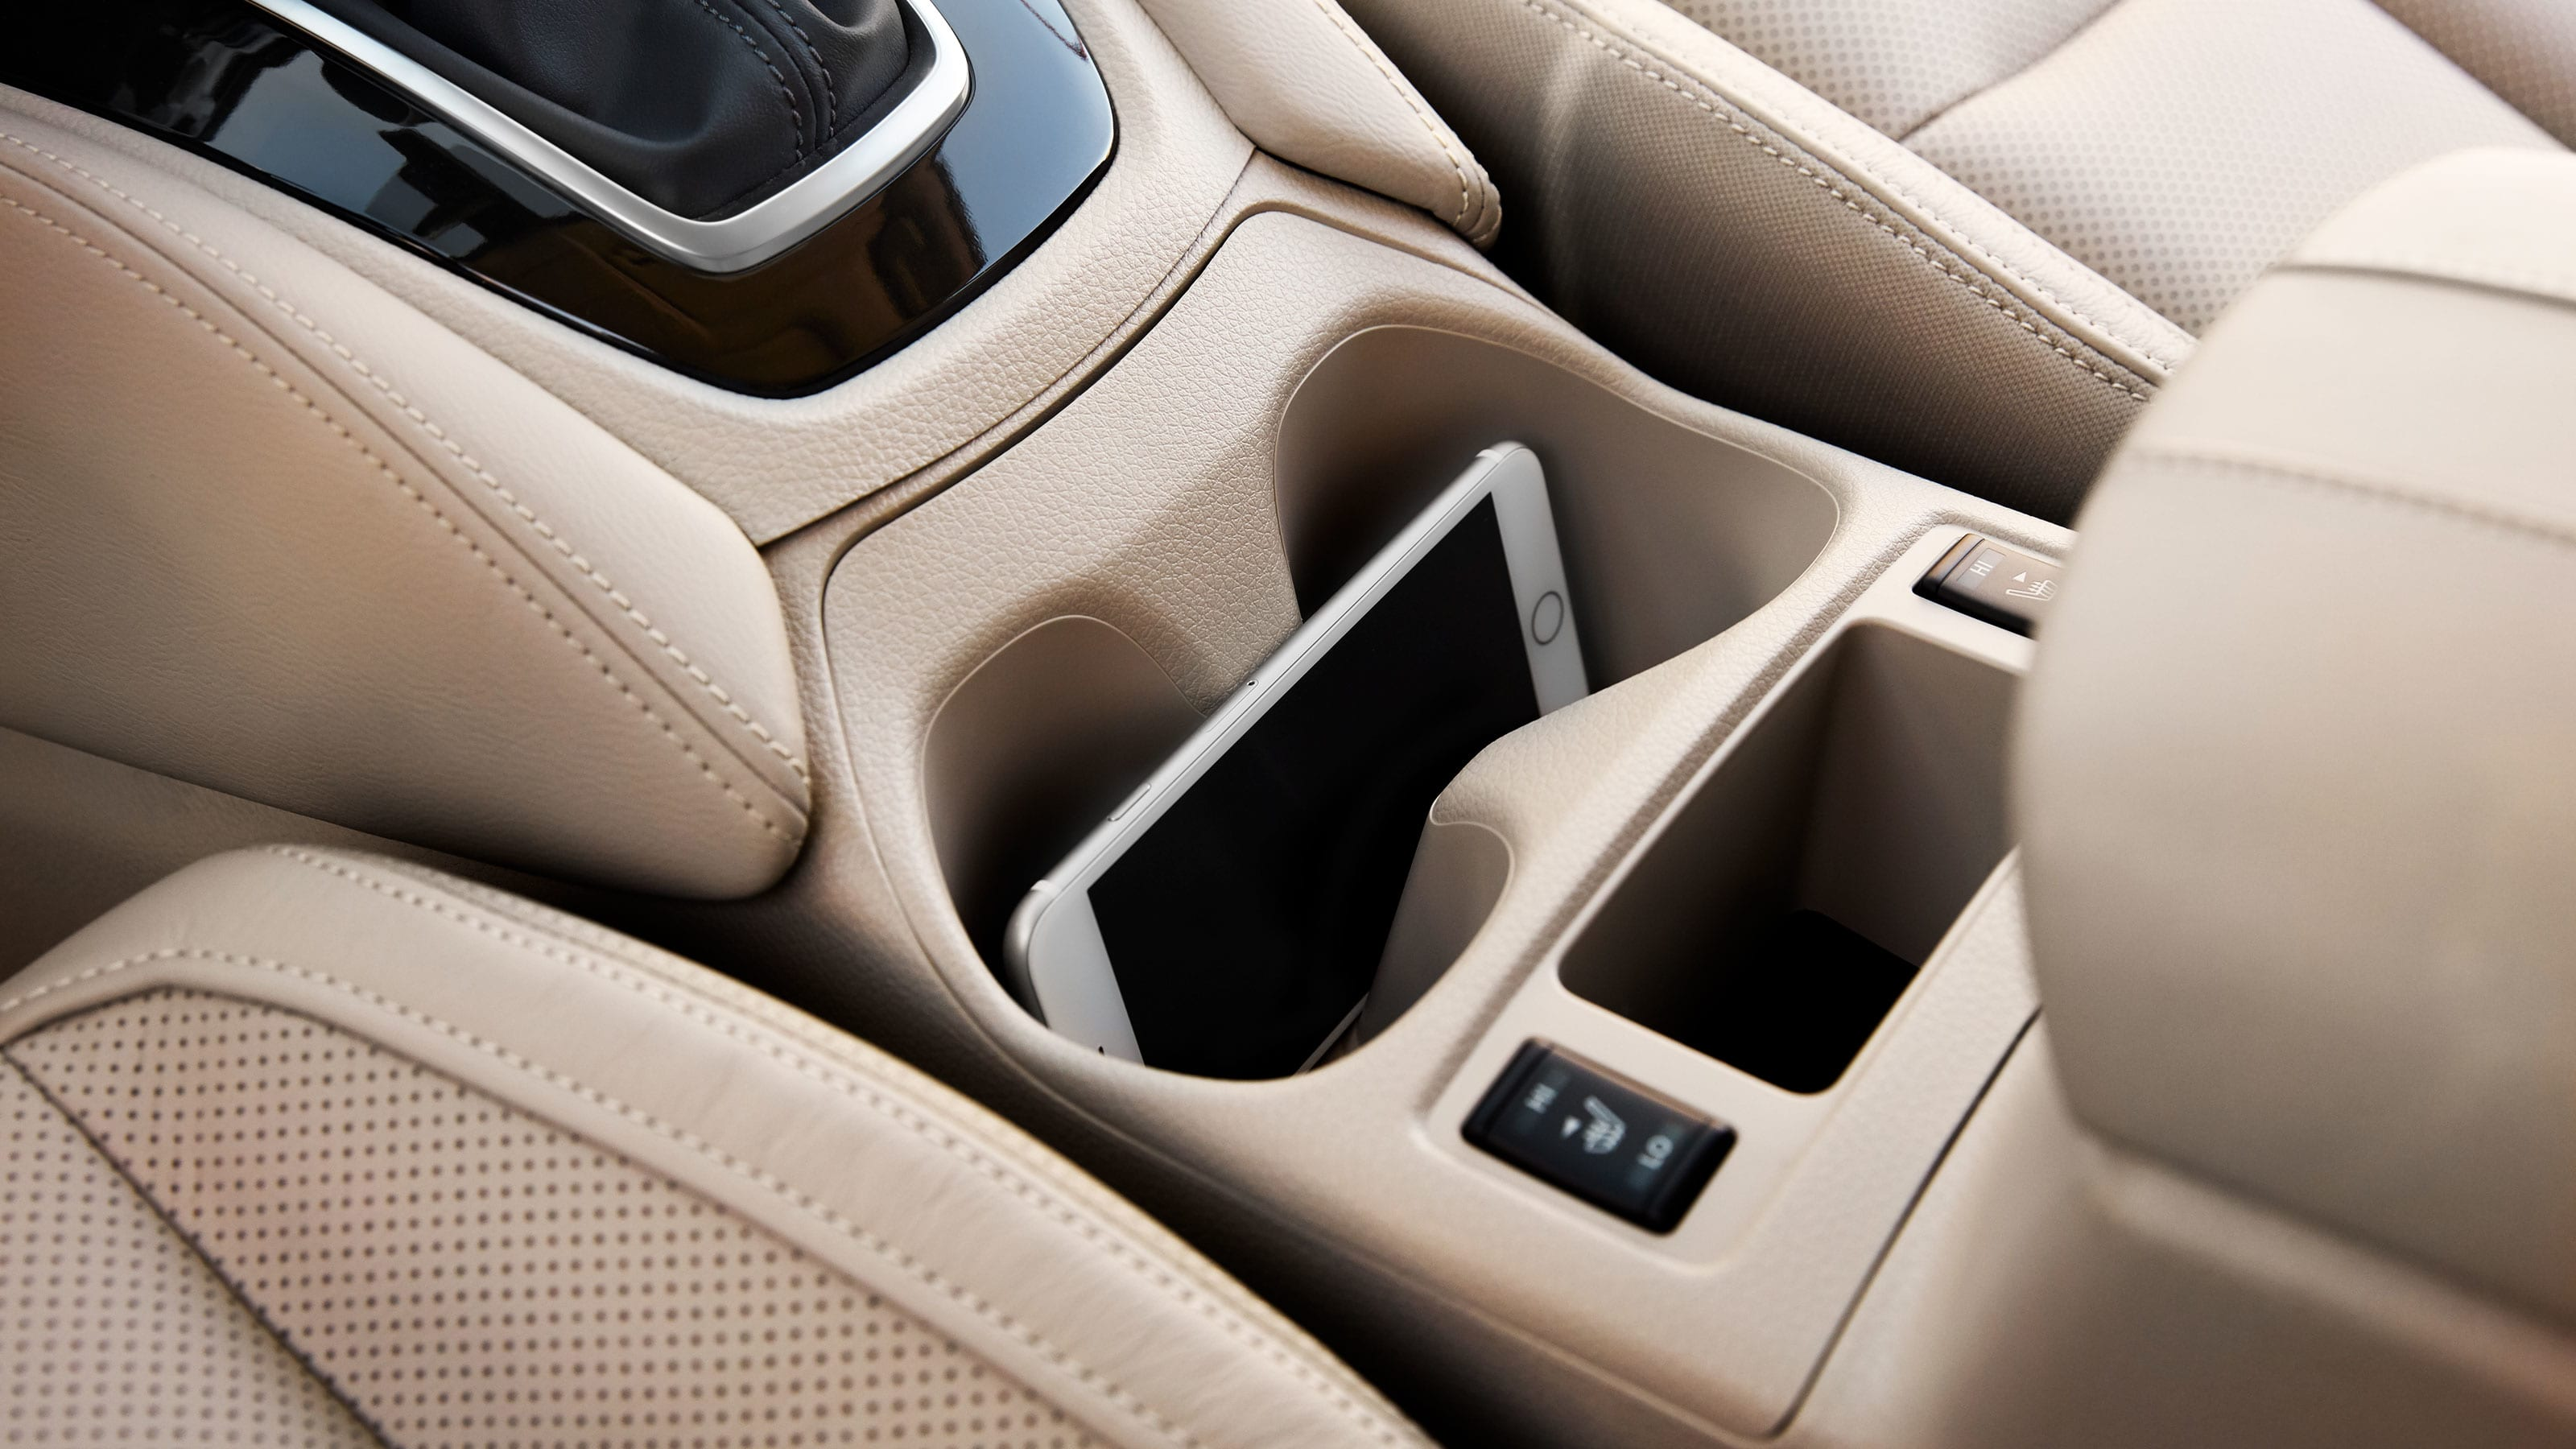 Amenities in the 2019 Rogue